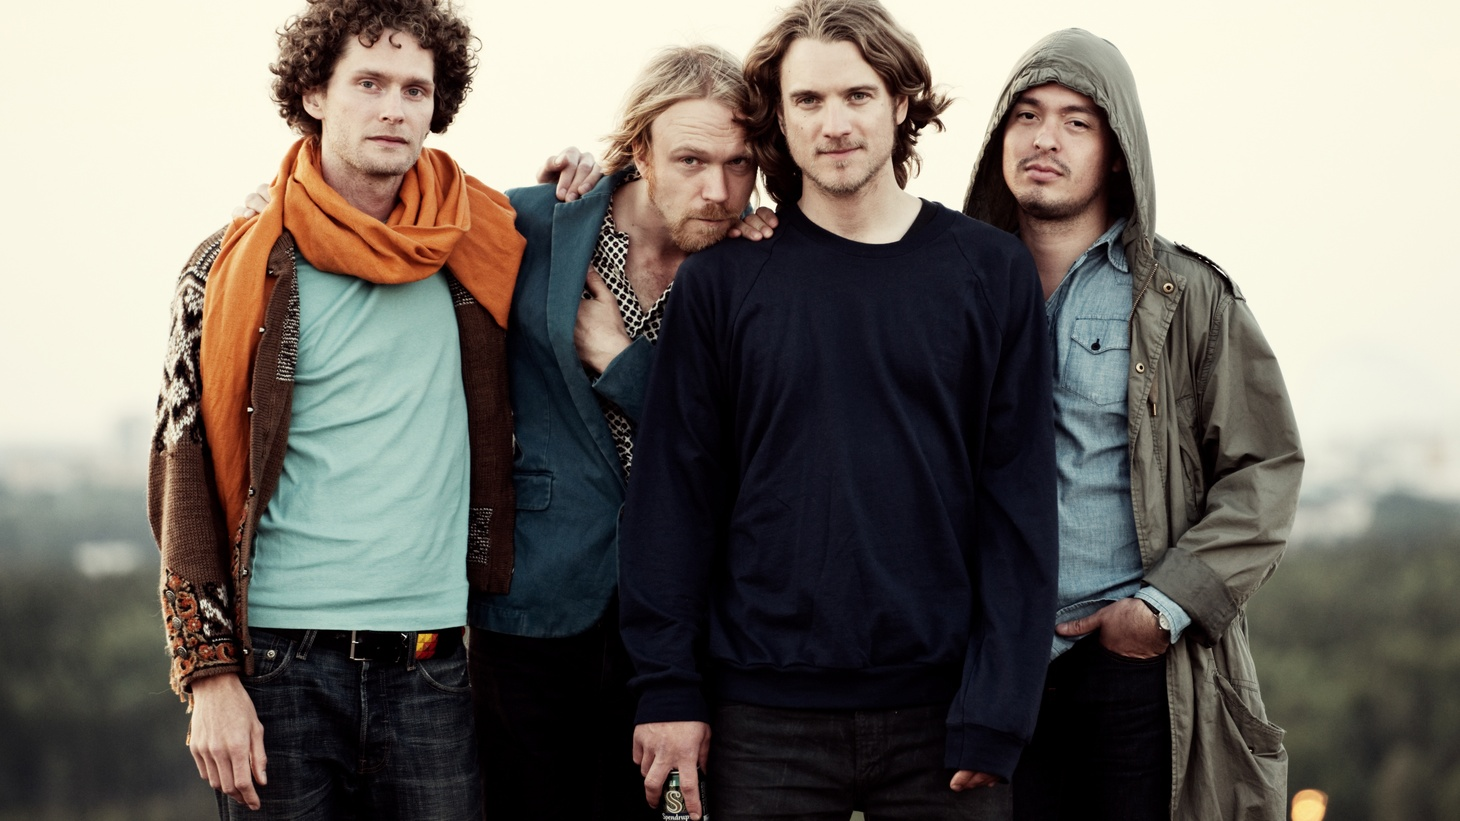 """Dungen named their seventh album Allas Sak, which loosely translates from the Swedish to """"Everyone's Thing,"""" which explains the band's creative and collaborative process."""